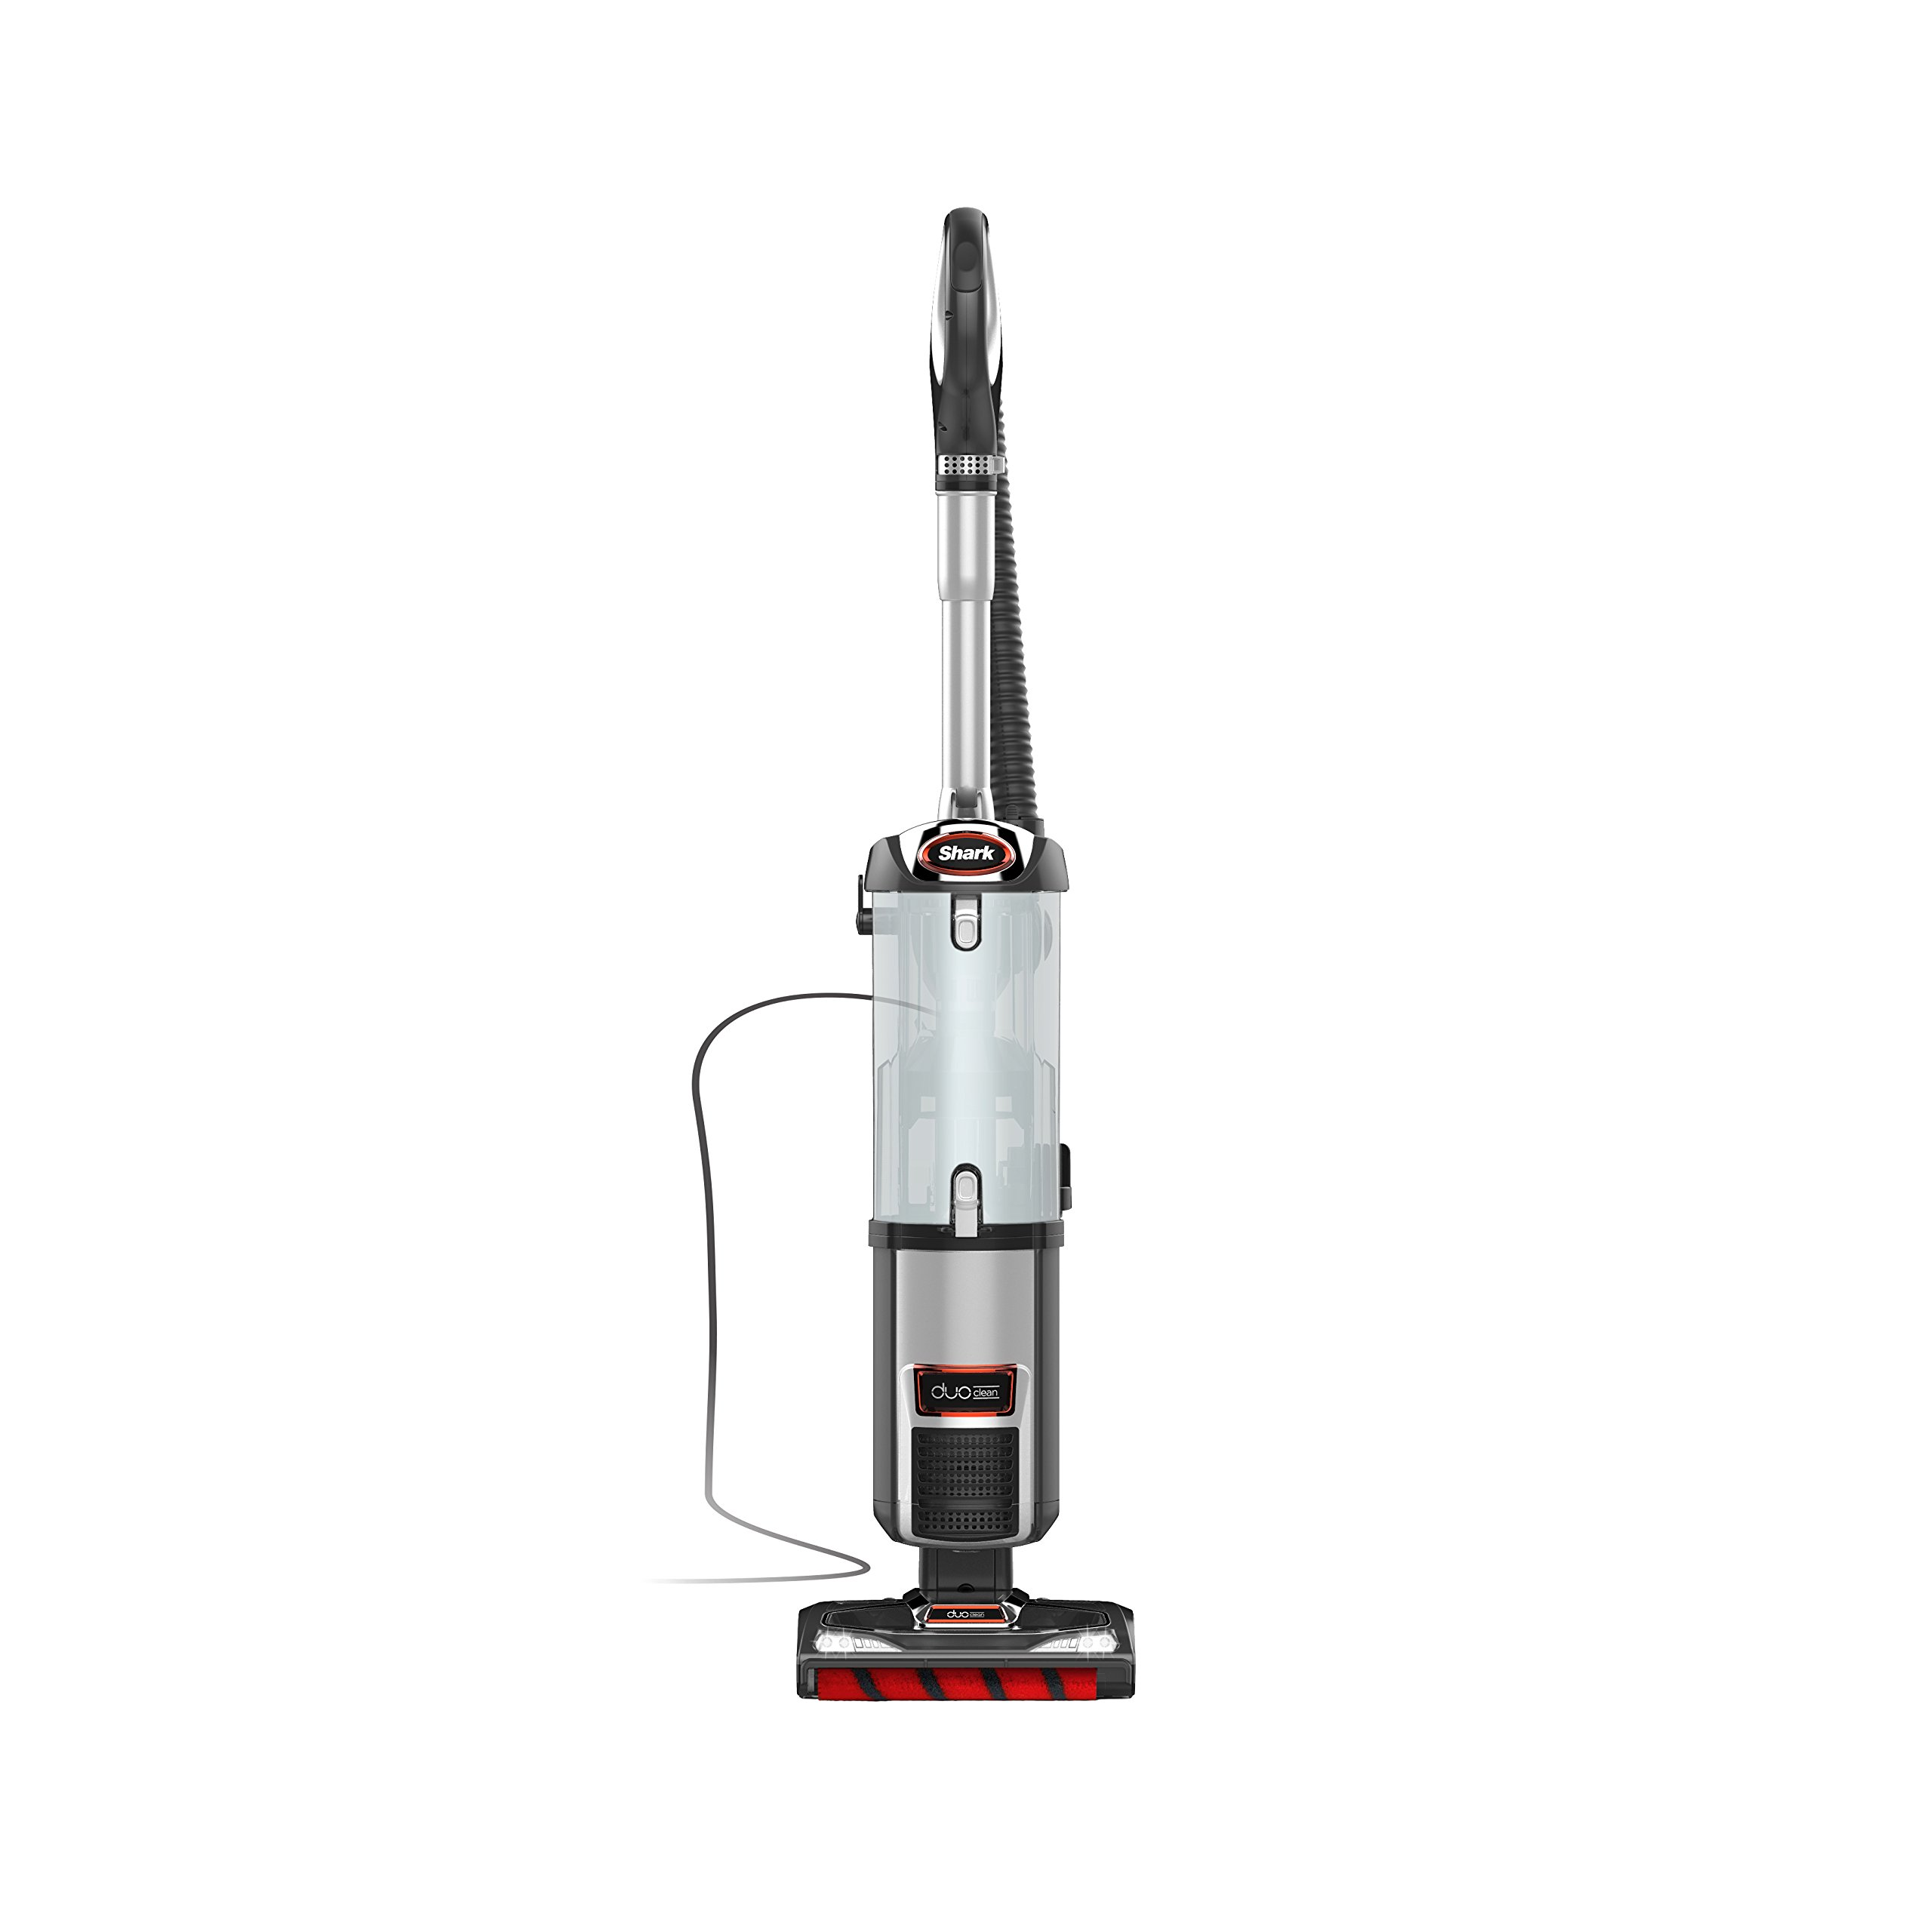 Shark DuoClean Upright Vacuum for Carpet and Hard Floor with Pet Tool, HEPA Filter and Anti-Allergy Seal (NV202), Gray by SharkNinja